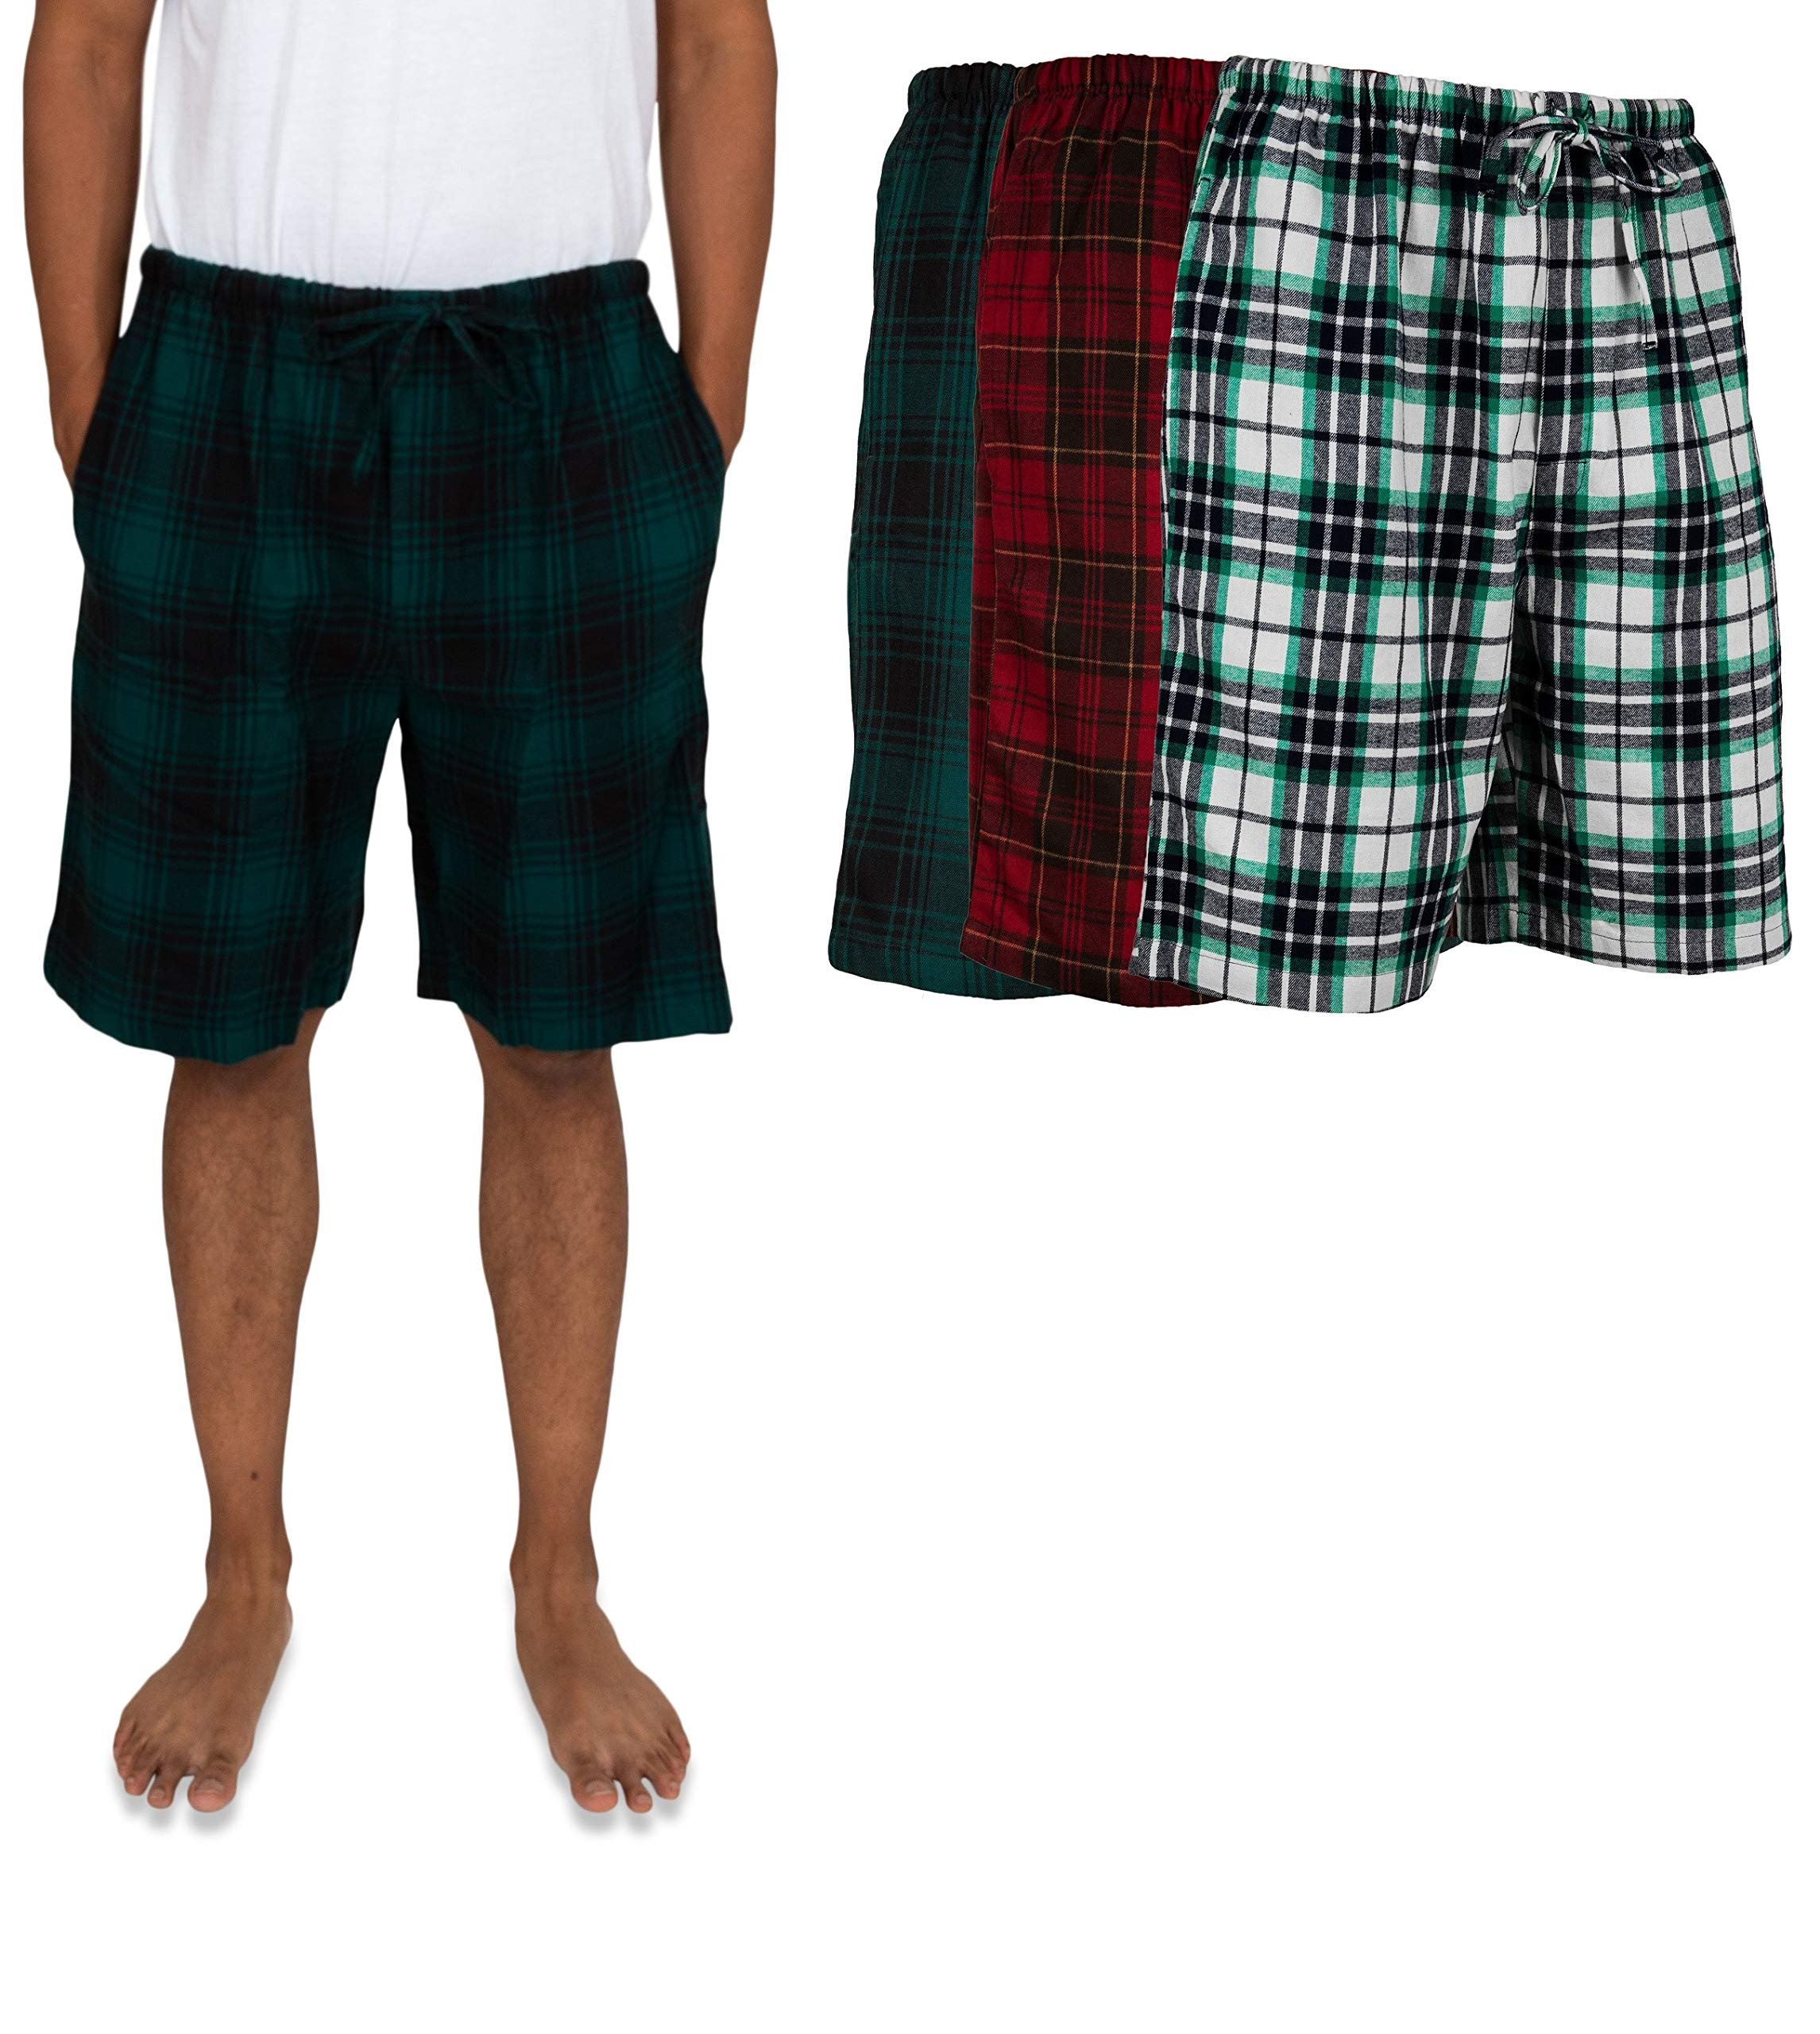 Andrew Scott Men's 3 Pack Light Weight Cotton Flannel Soft Fleece Brush Woven Pajama/Lounge Sleep Shorts (3 Pack - Assorted Classics Plaids, Large)